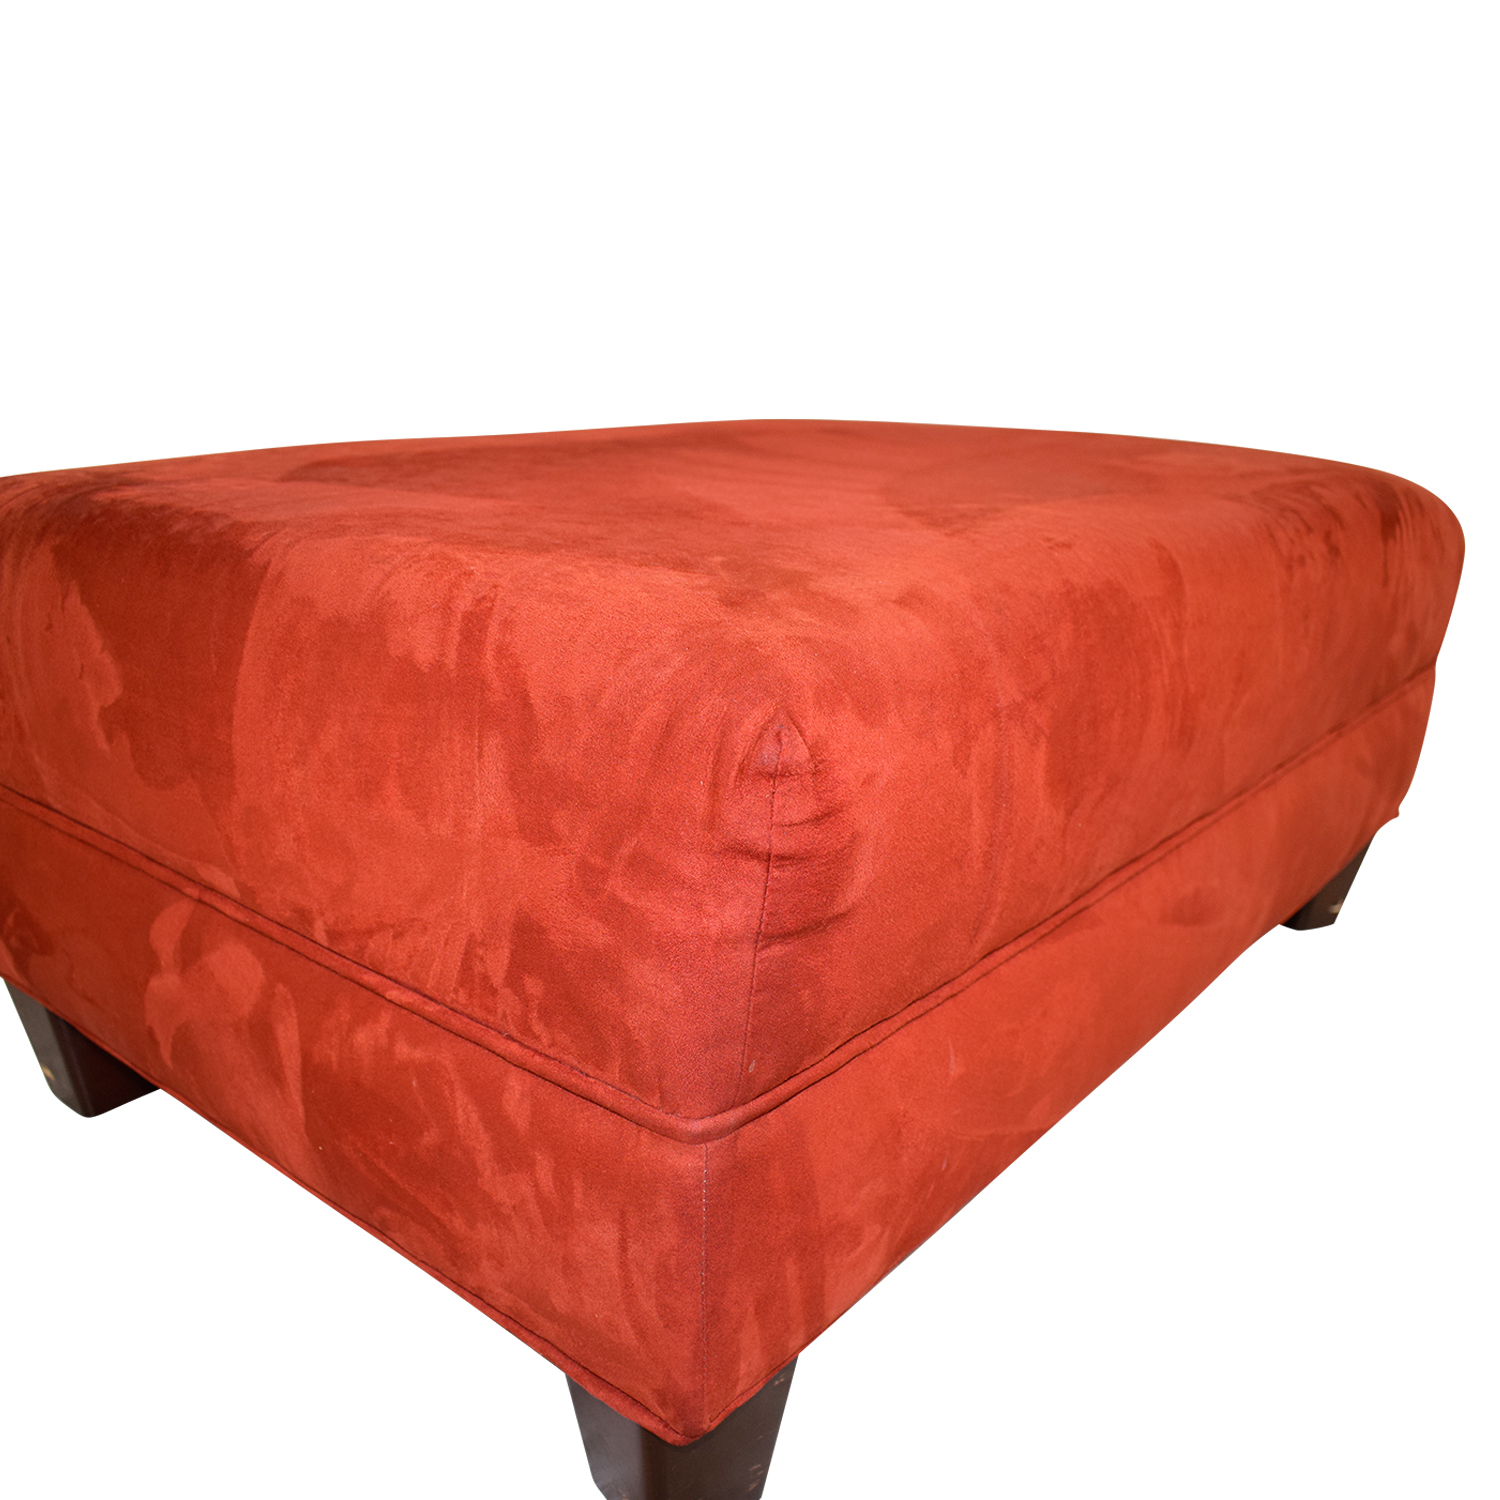 Red Ottoman used